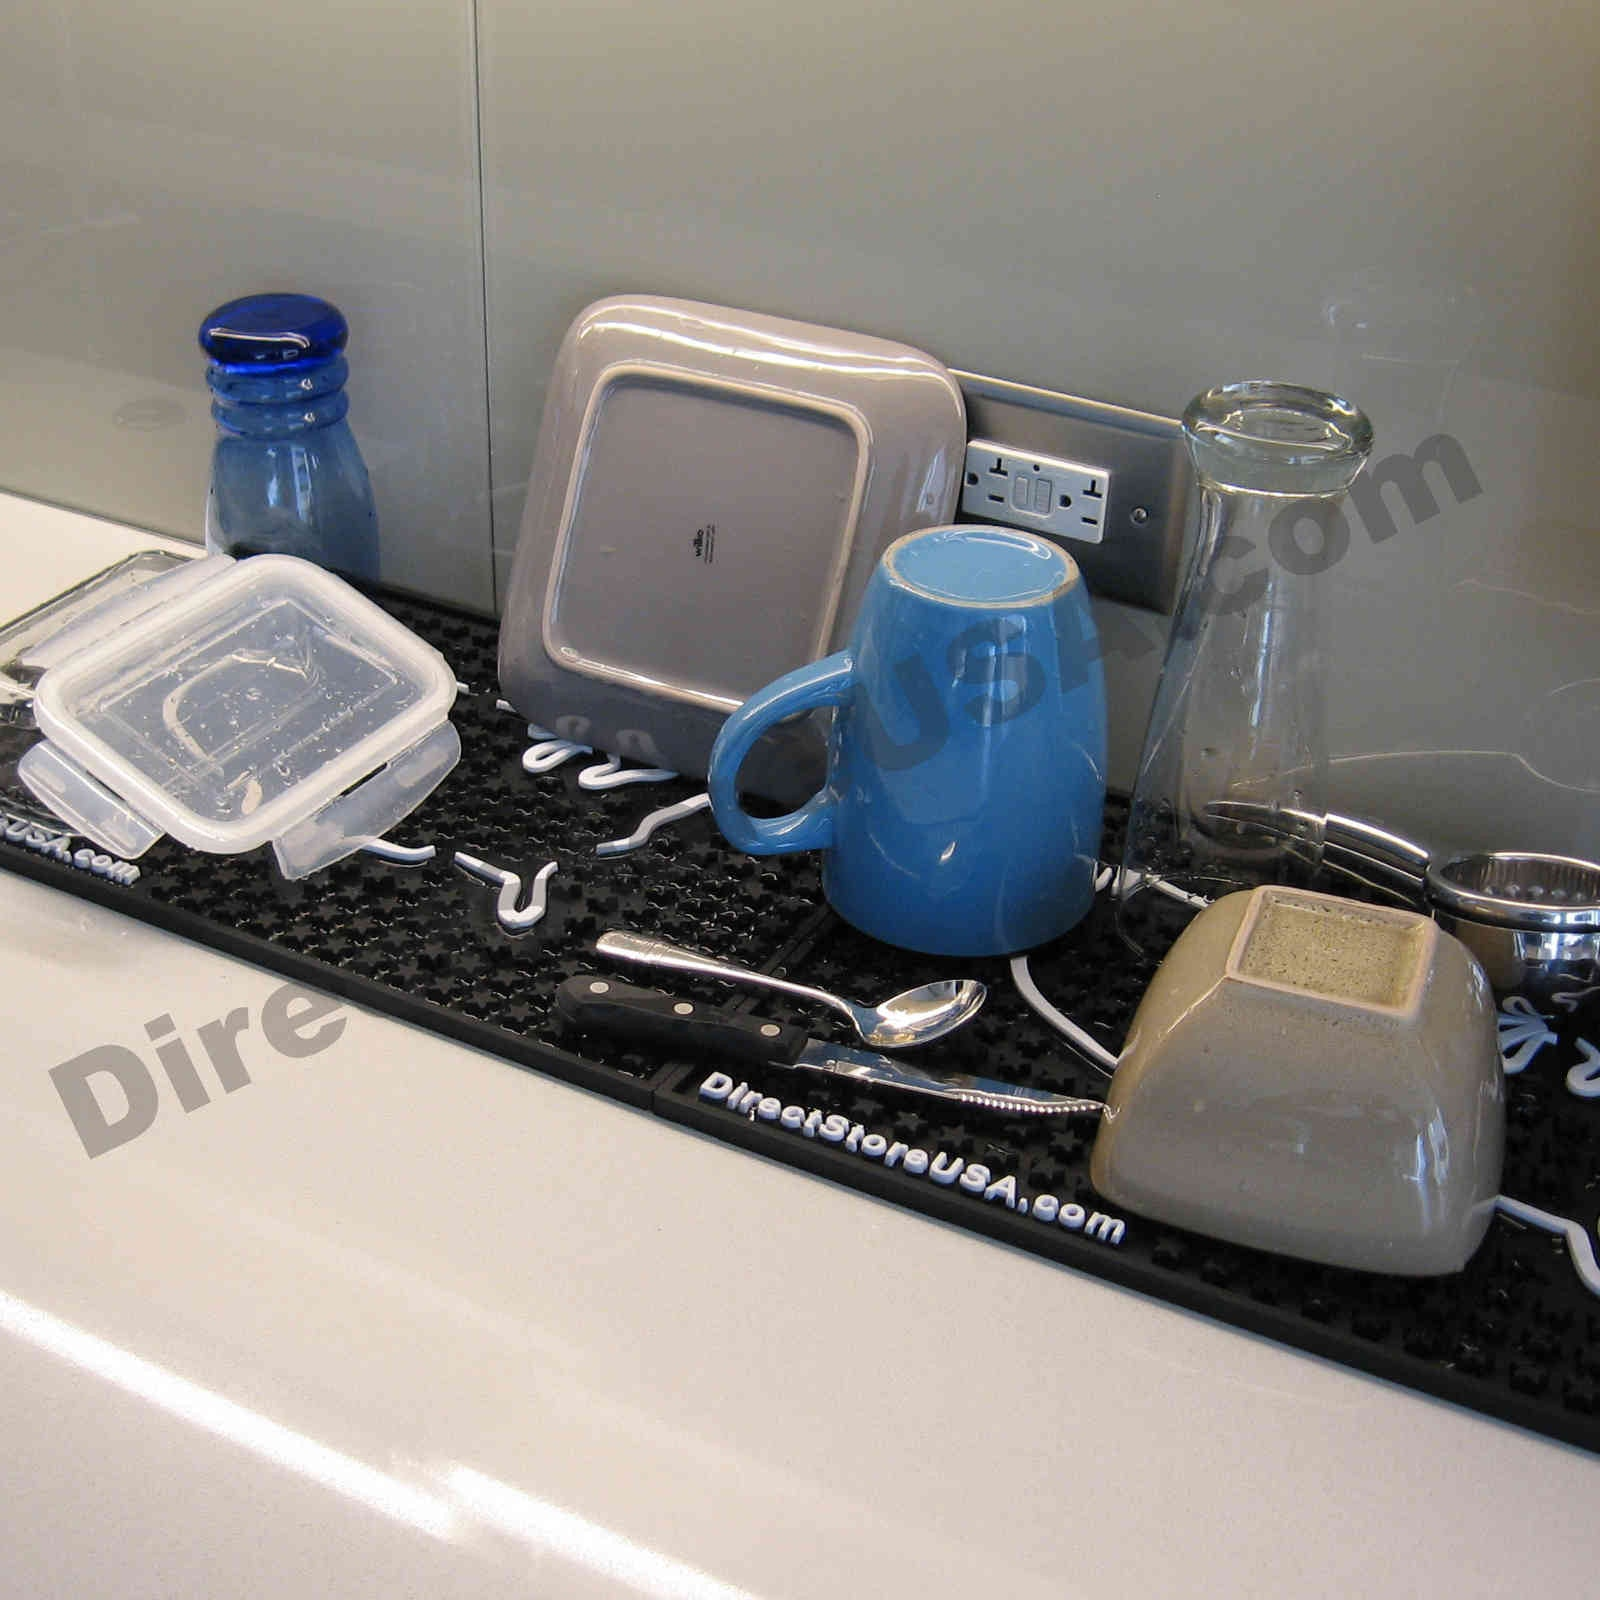 Professional-Grade Rubber Kitchen Dish Drying Mat, Bar Mat, Glass Drainer Dryer Rack, Service Mat - DirectStoreUSA.com LLC